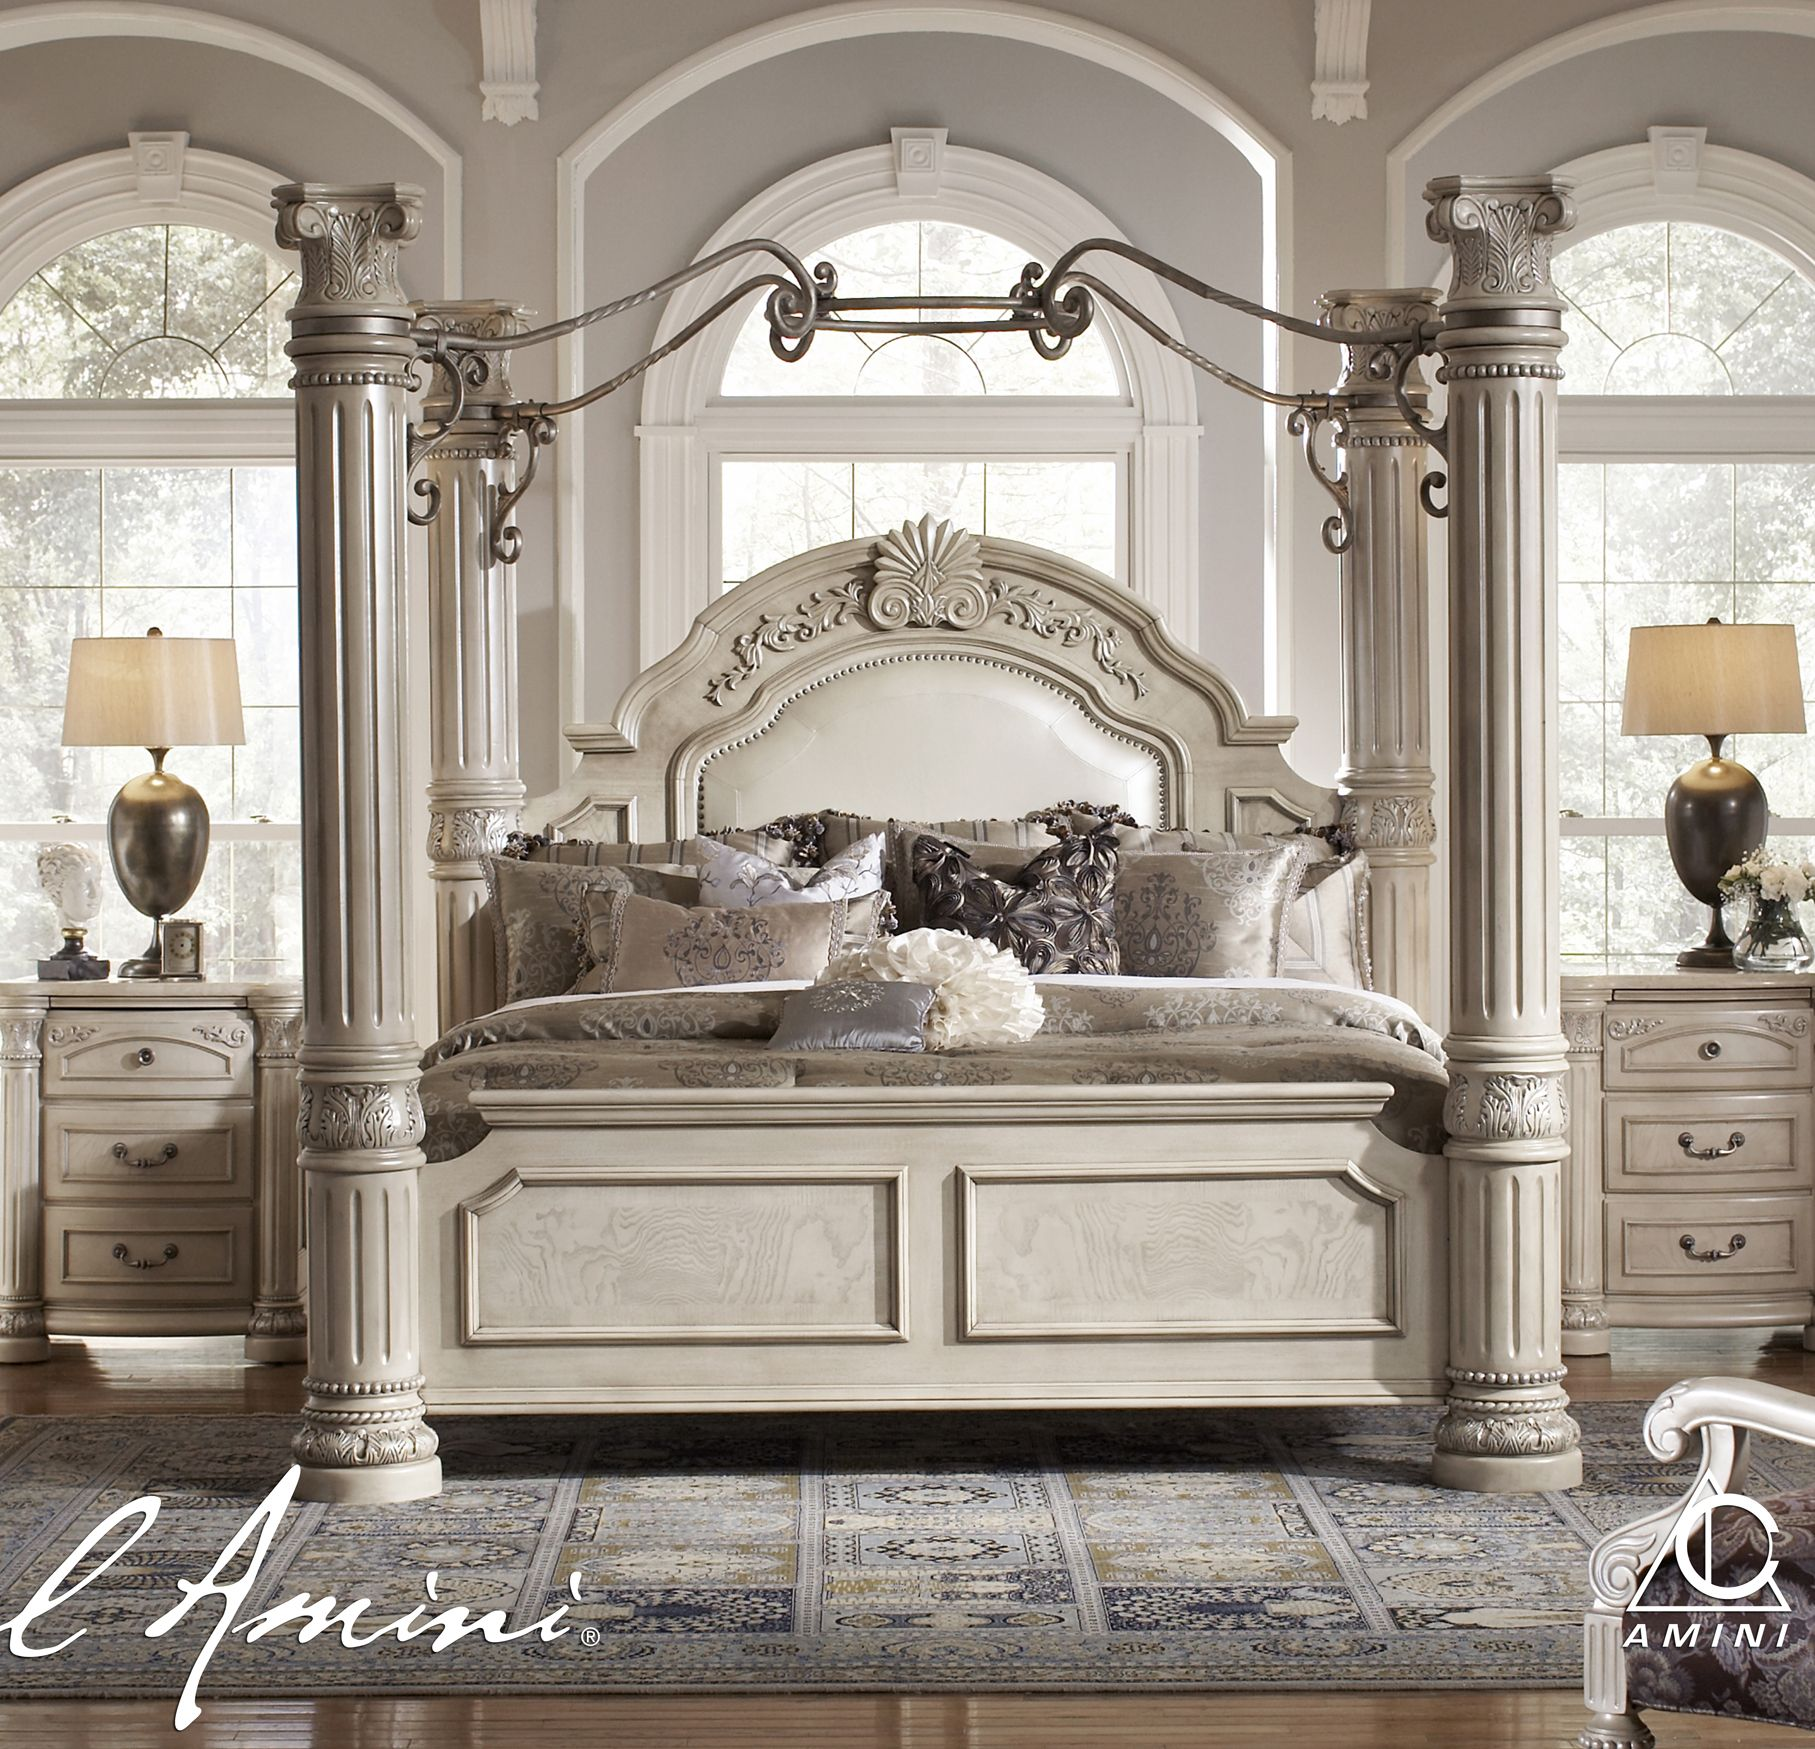 17 best images about the big beds on pinterest | poster beds, bed